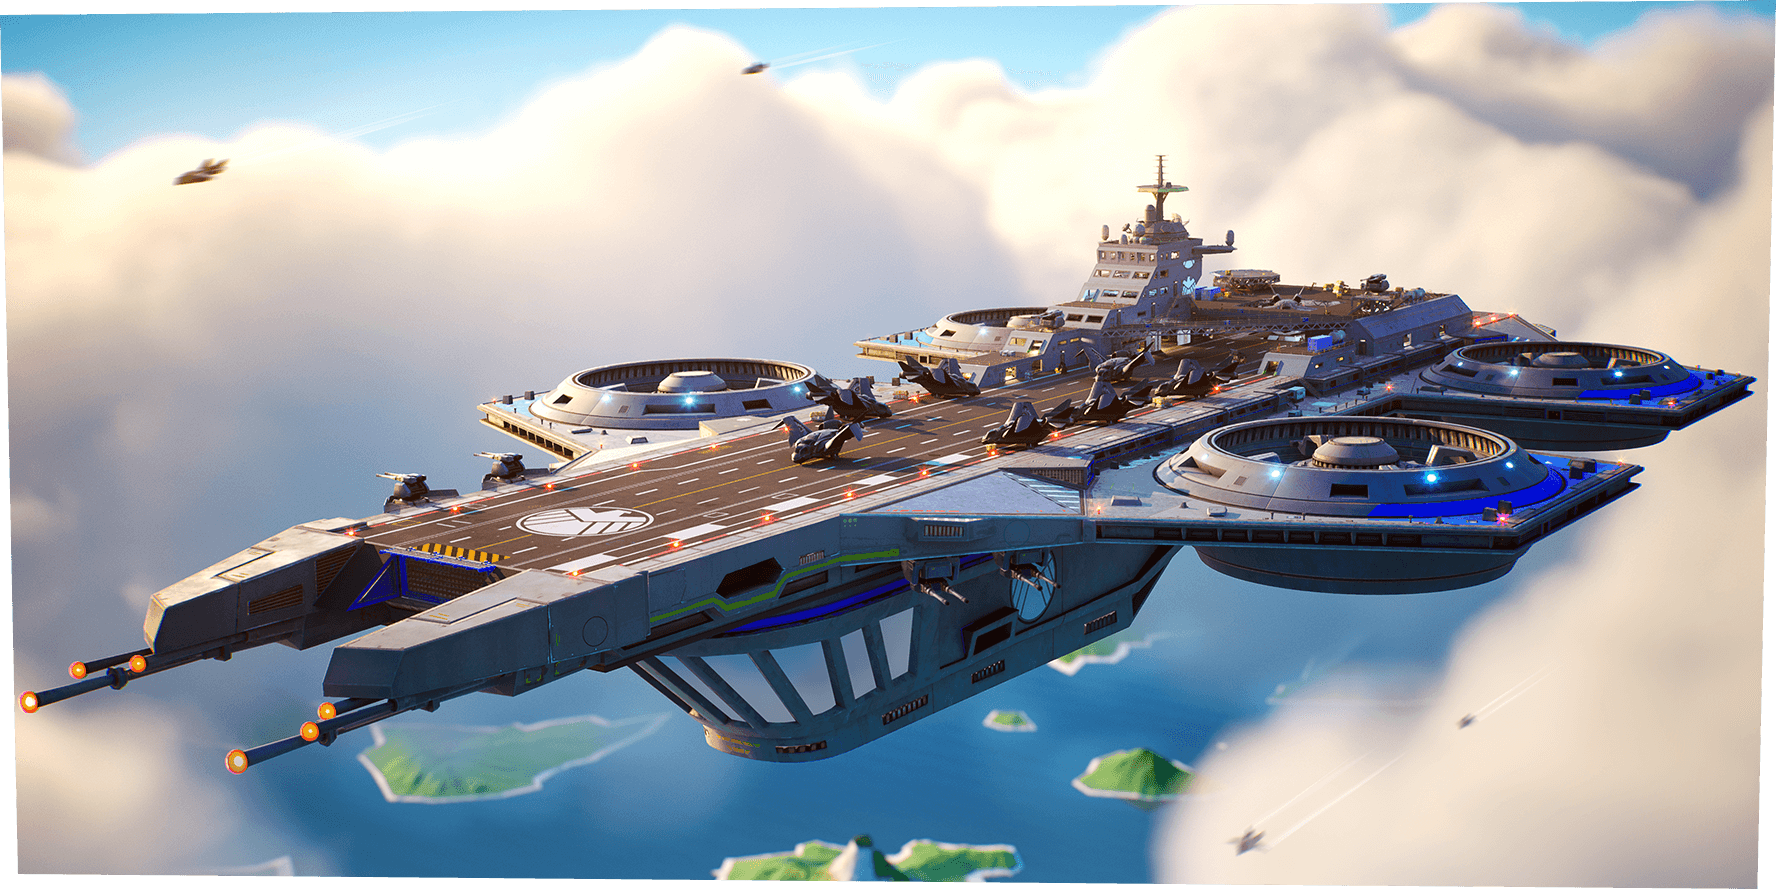 Helicarrier in Fortnite